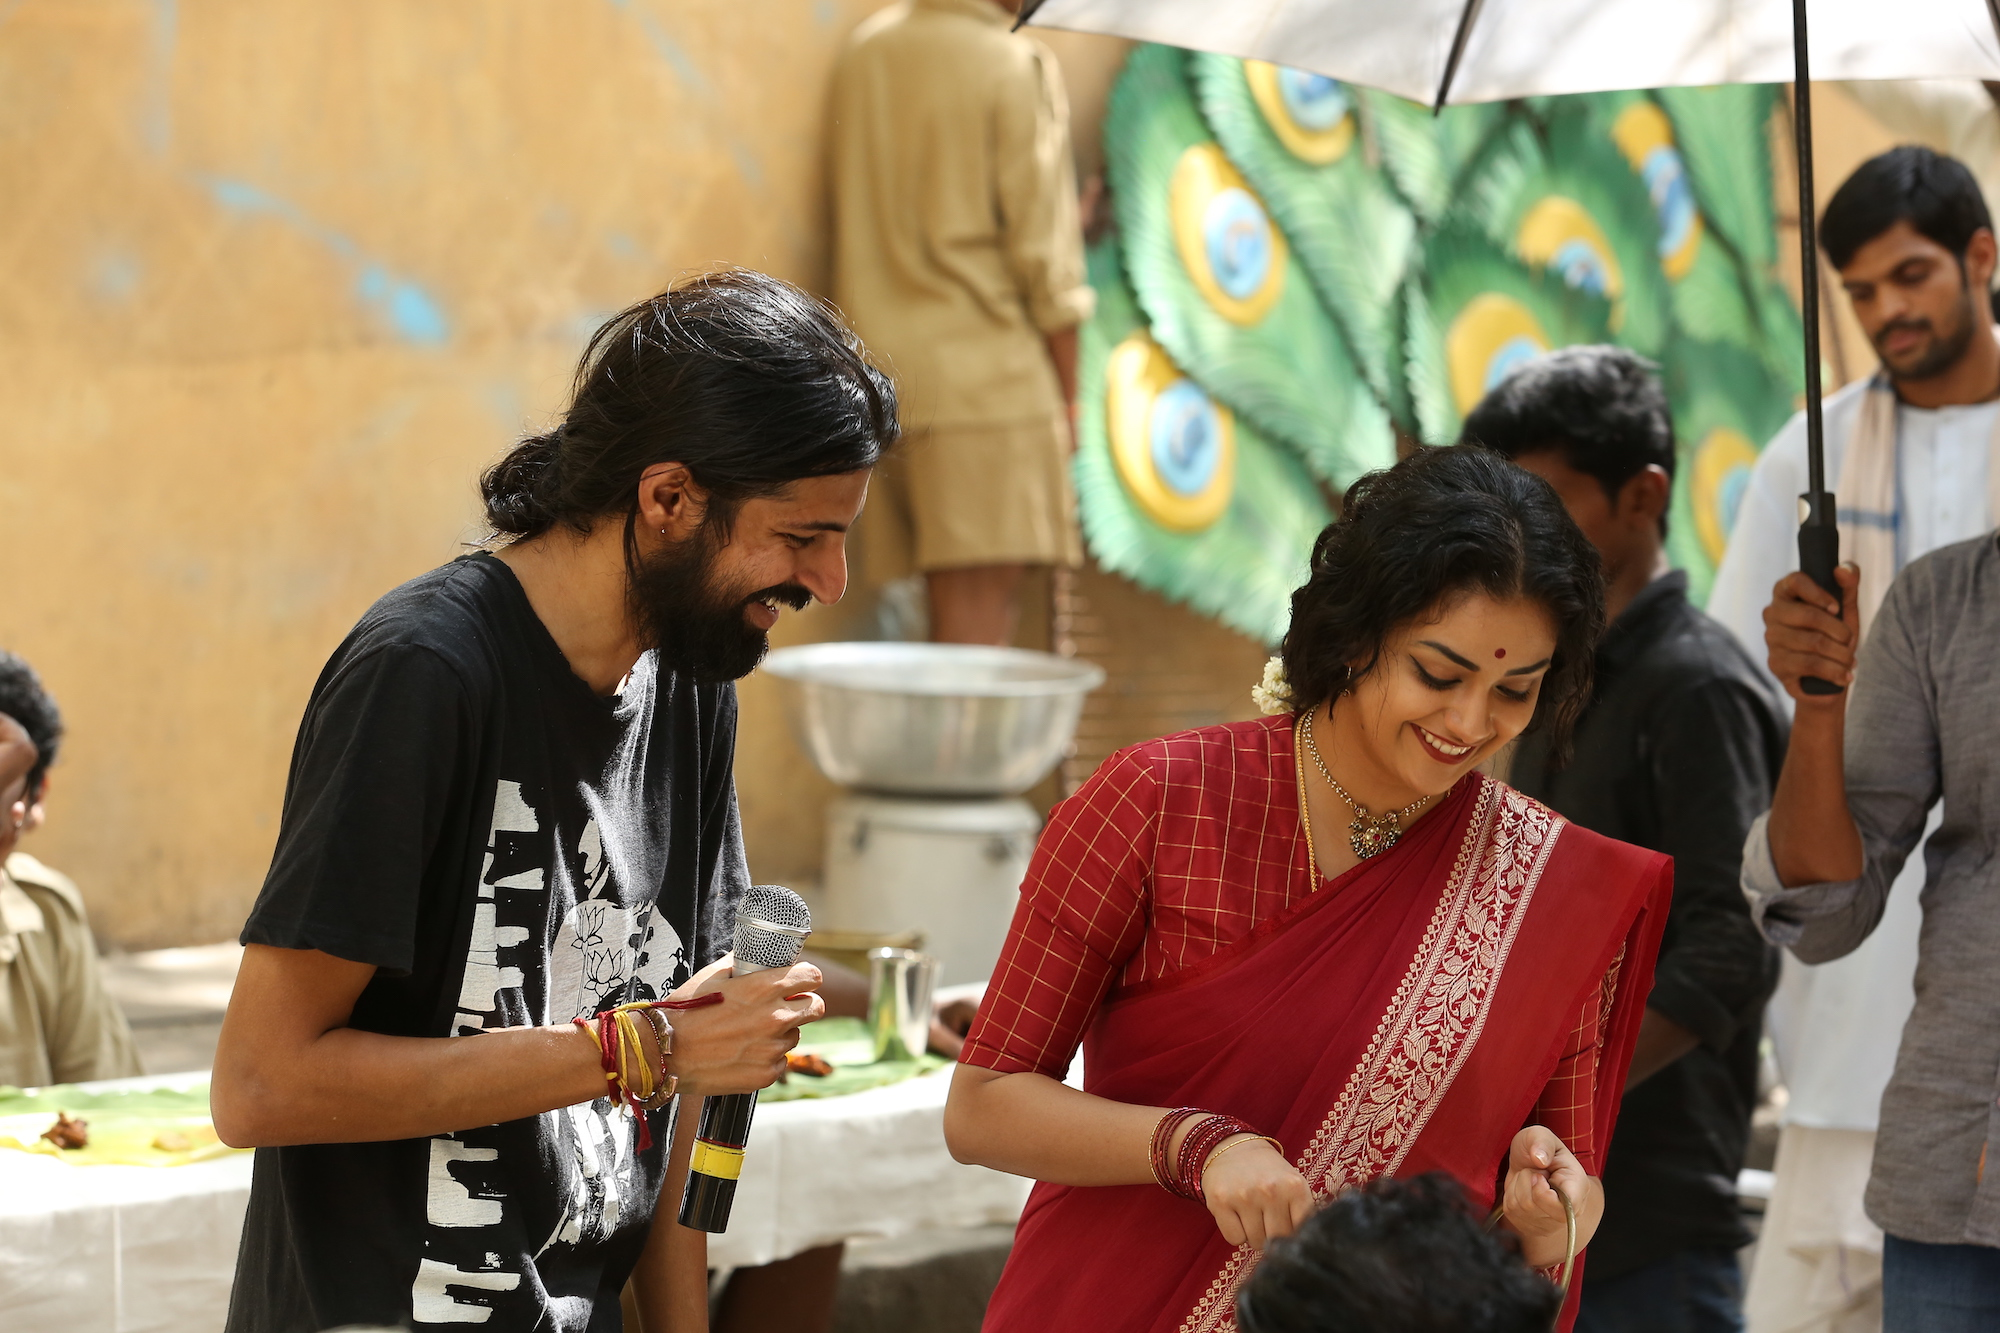 Nag Ashwin and Keerthy Suresh on the sets of Mahanati. Image credit: Vyjayanthi Movies.